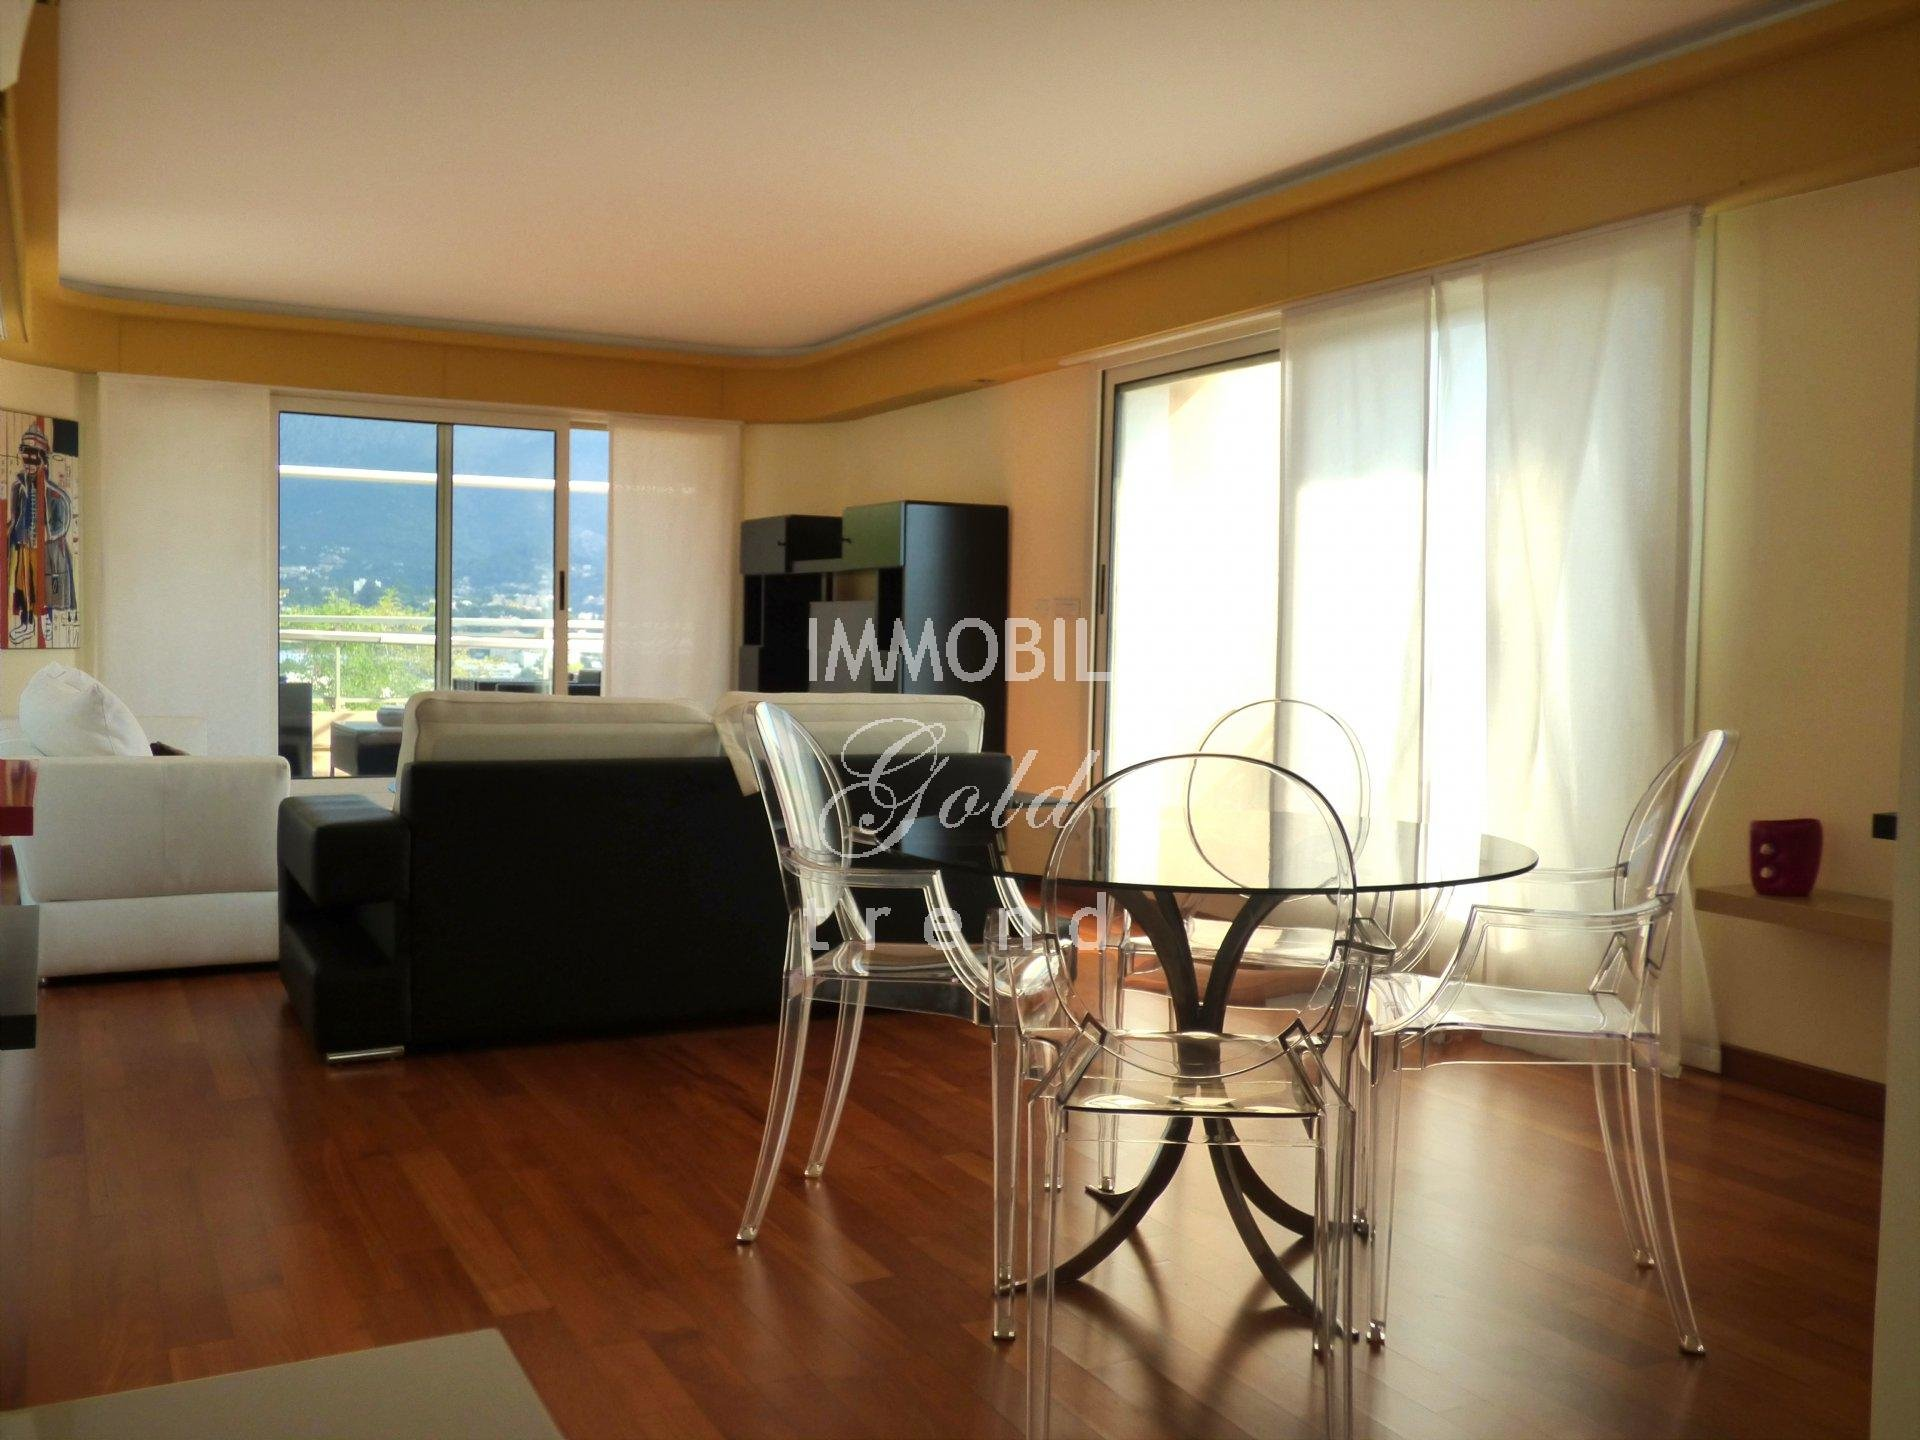 Real estate Roquebrune Cap Martin - For sale, wonderful penthouse apartment with panoramic view situated on the Plateau of the Cap Martin